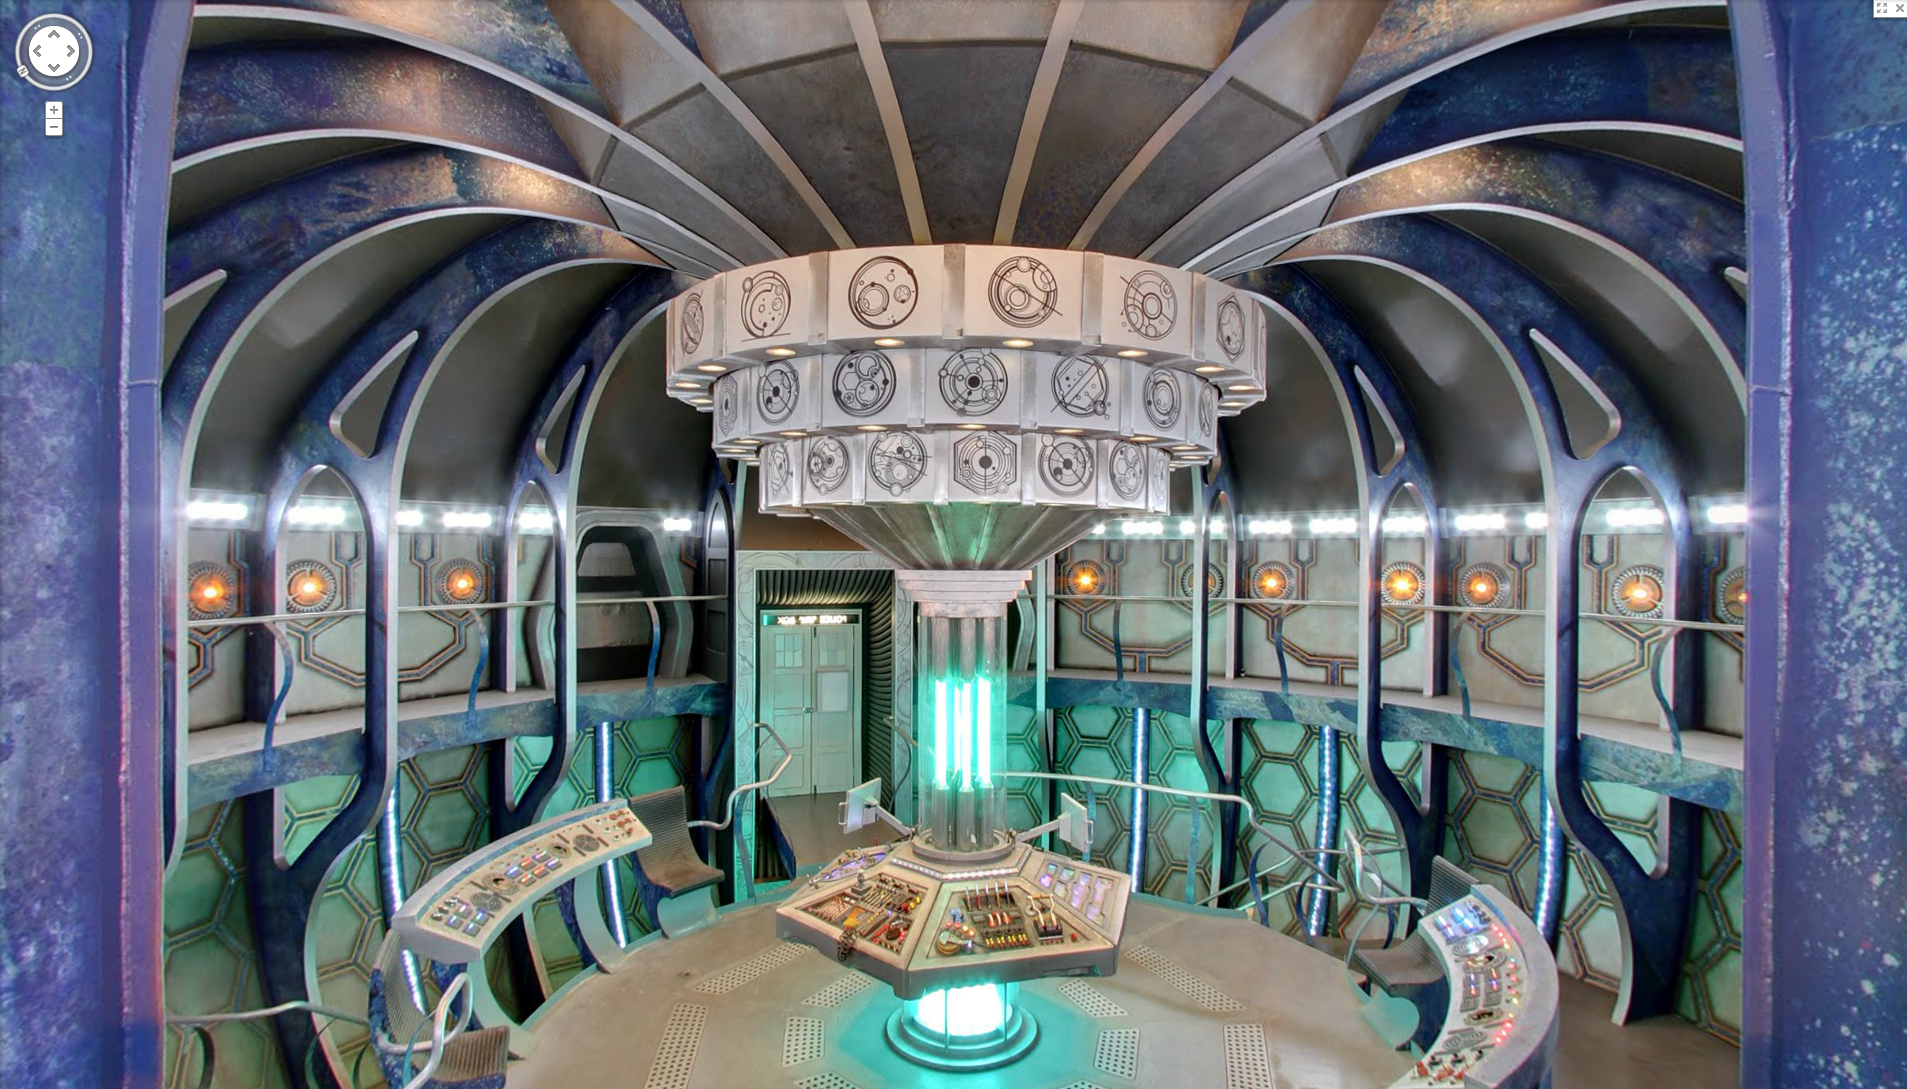 Tardis interior 2013 wallpaper images for Interior wallpaper